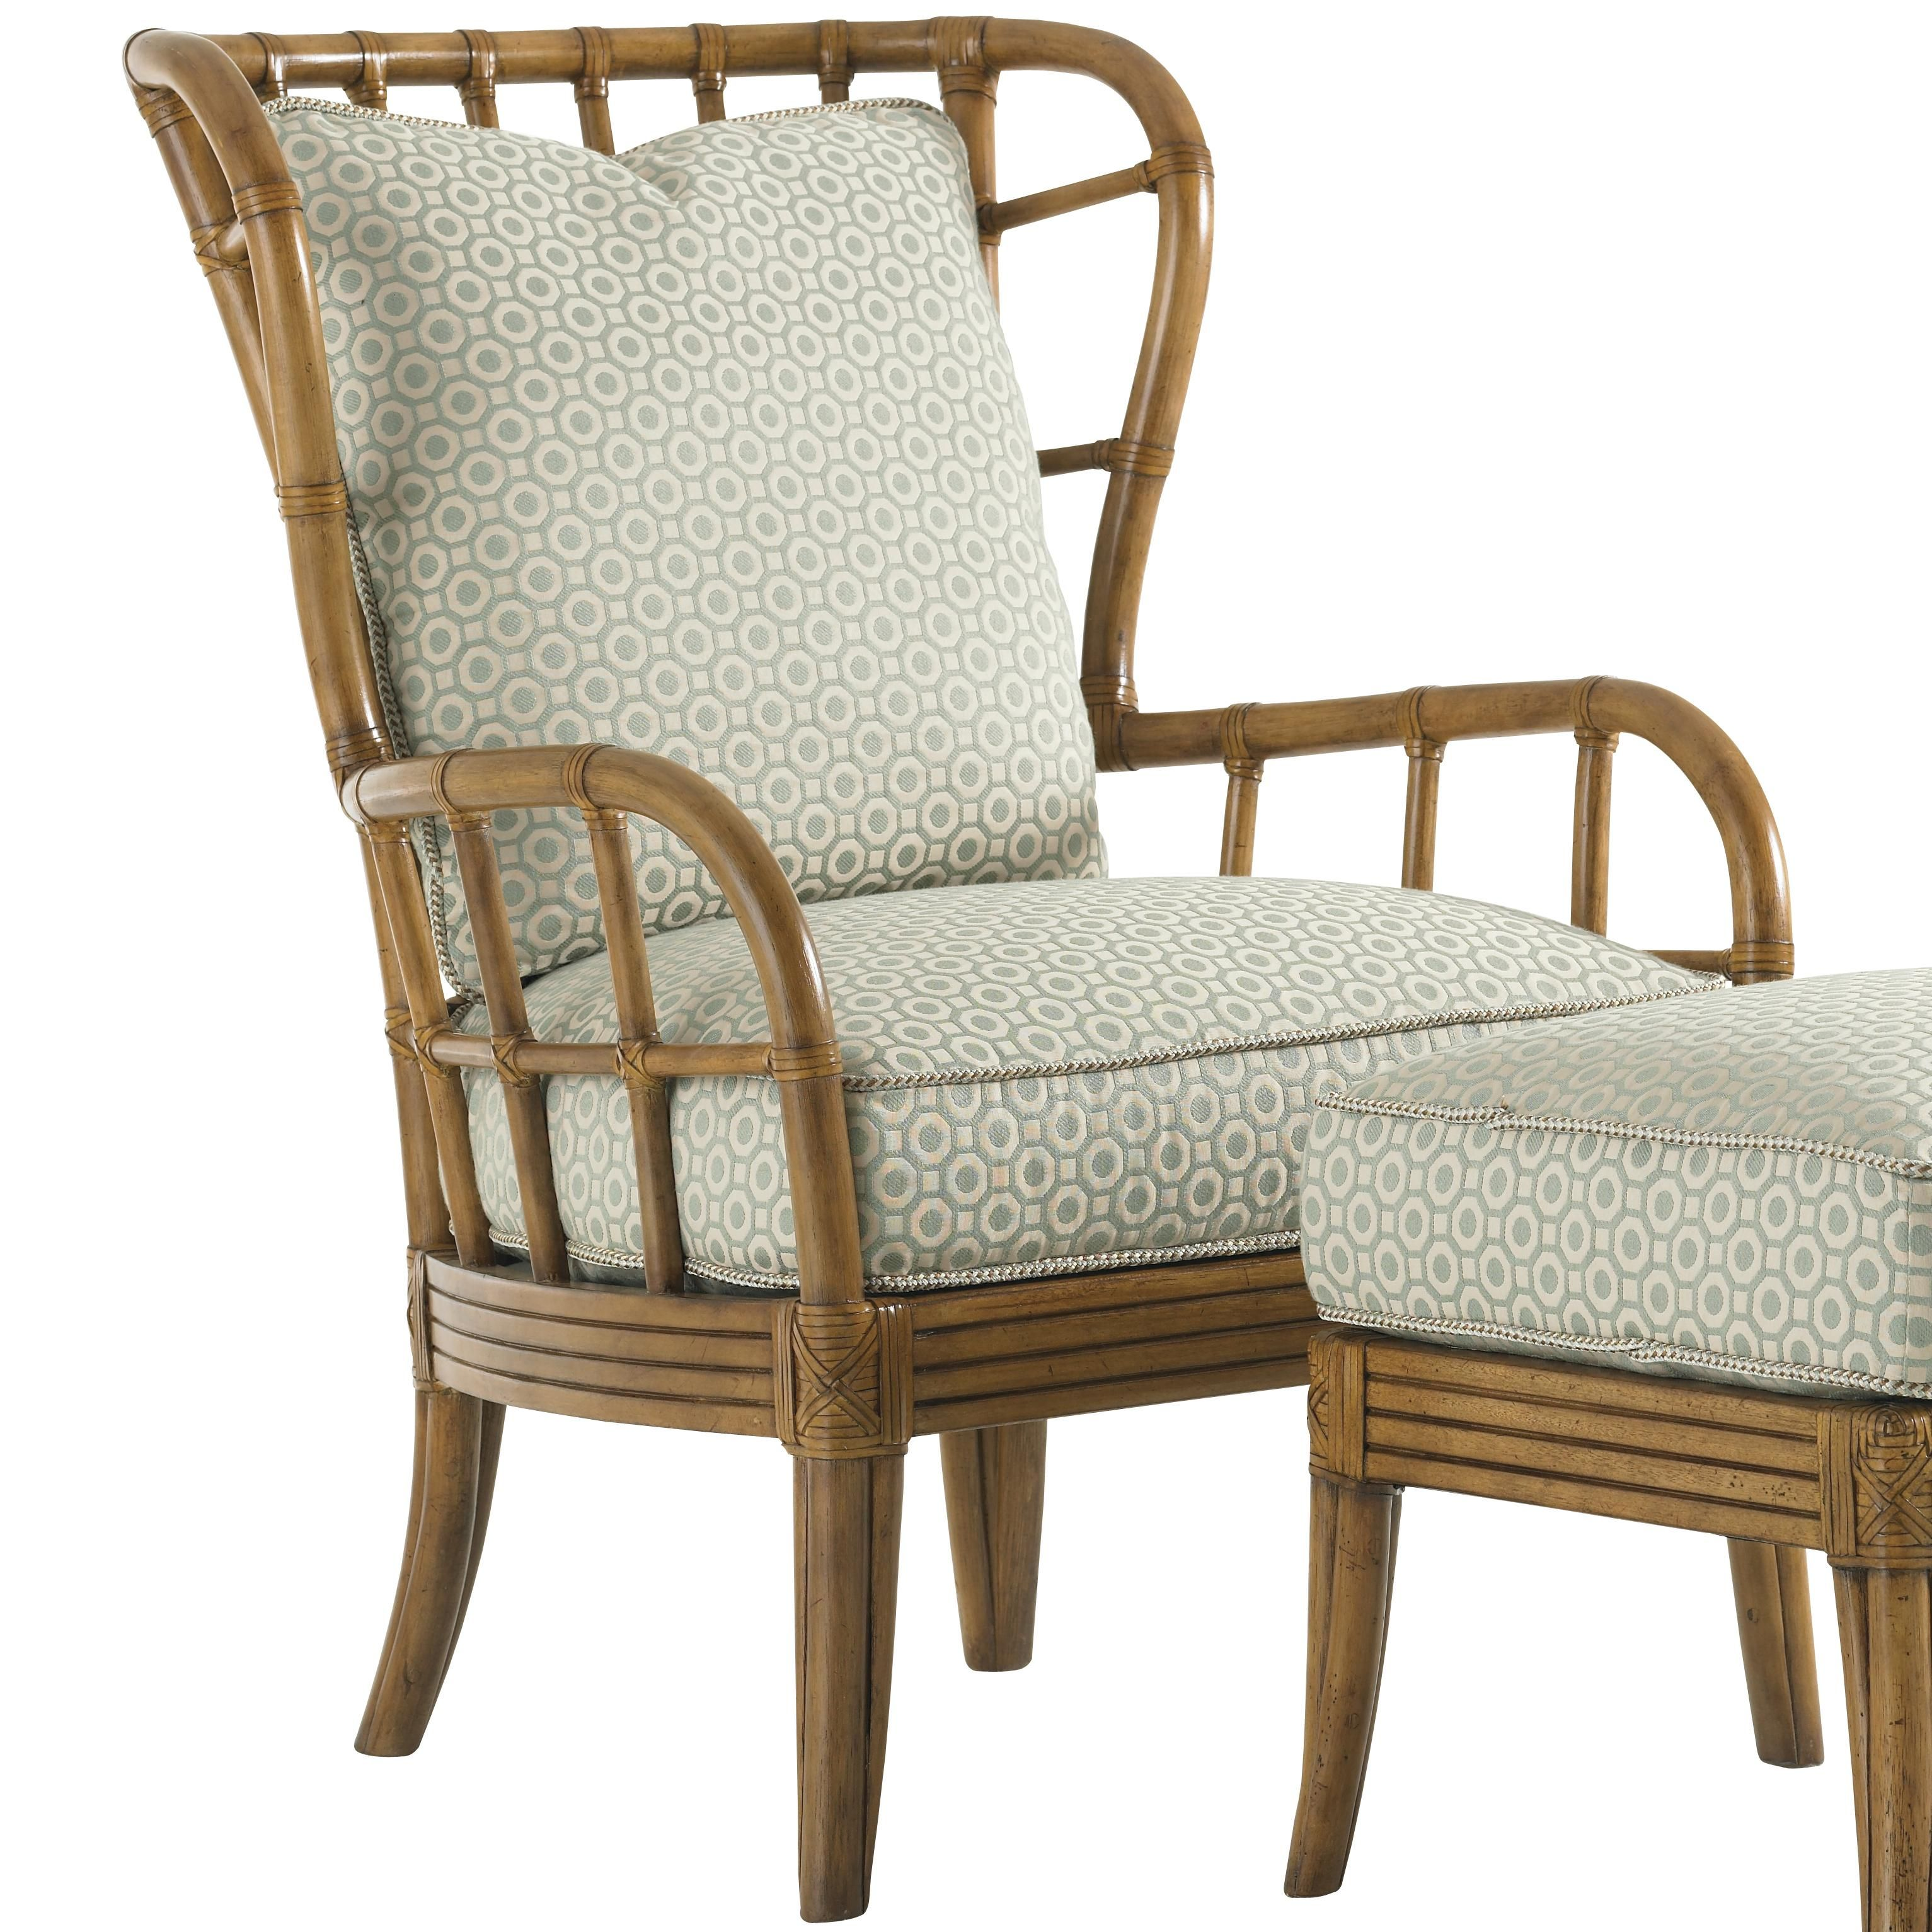 Beach House Sunset Cove Chair By Tommy Bahama Home Getting Warmer